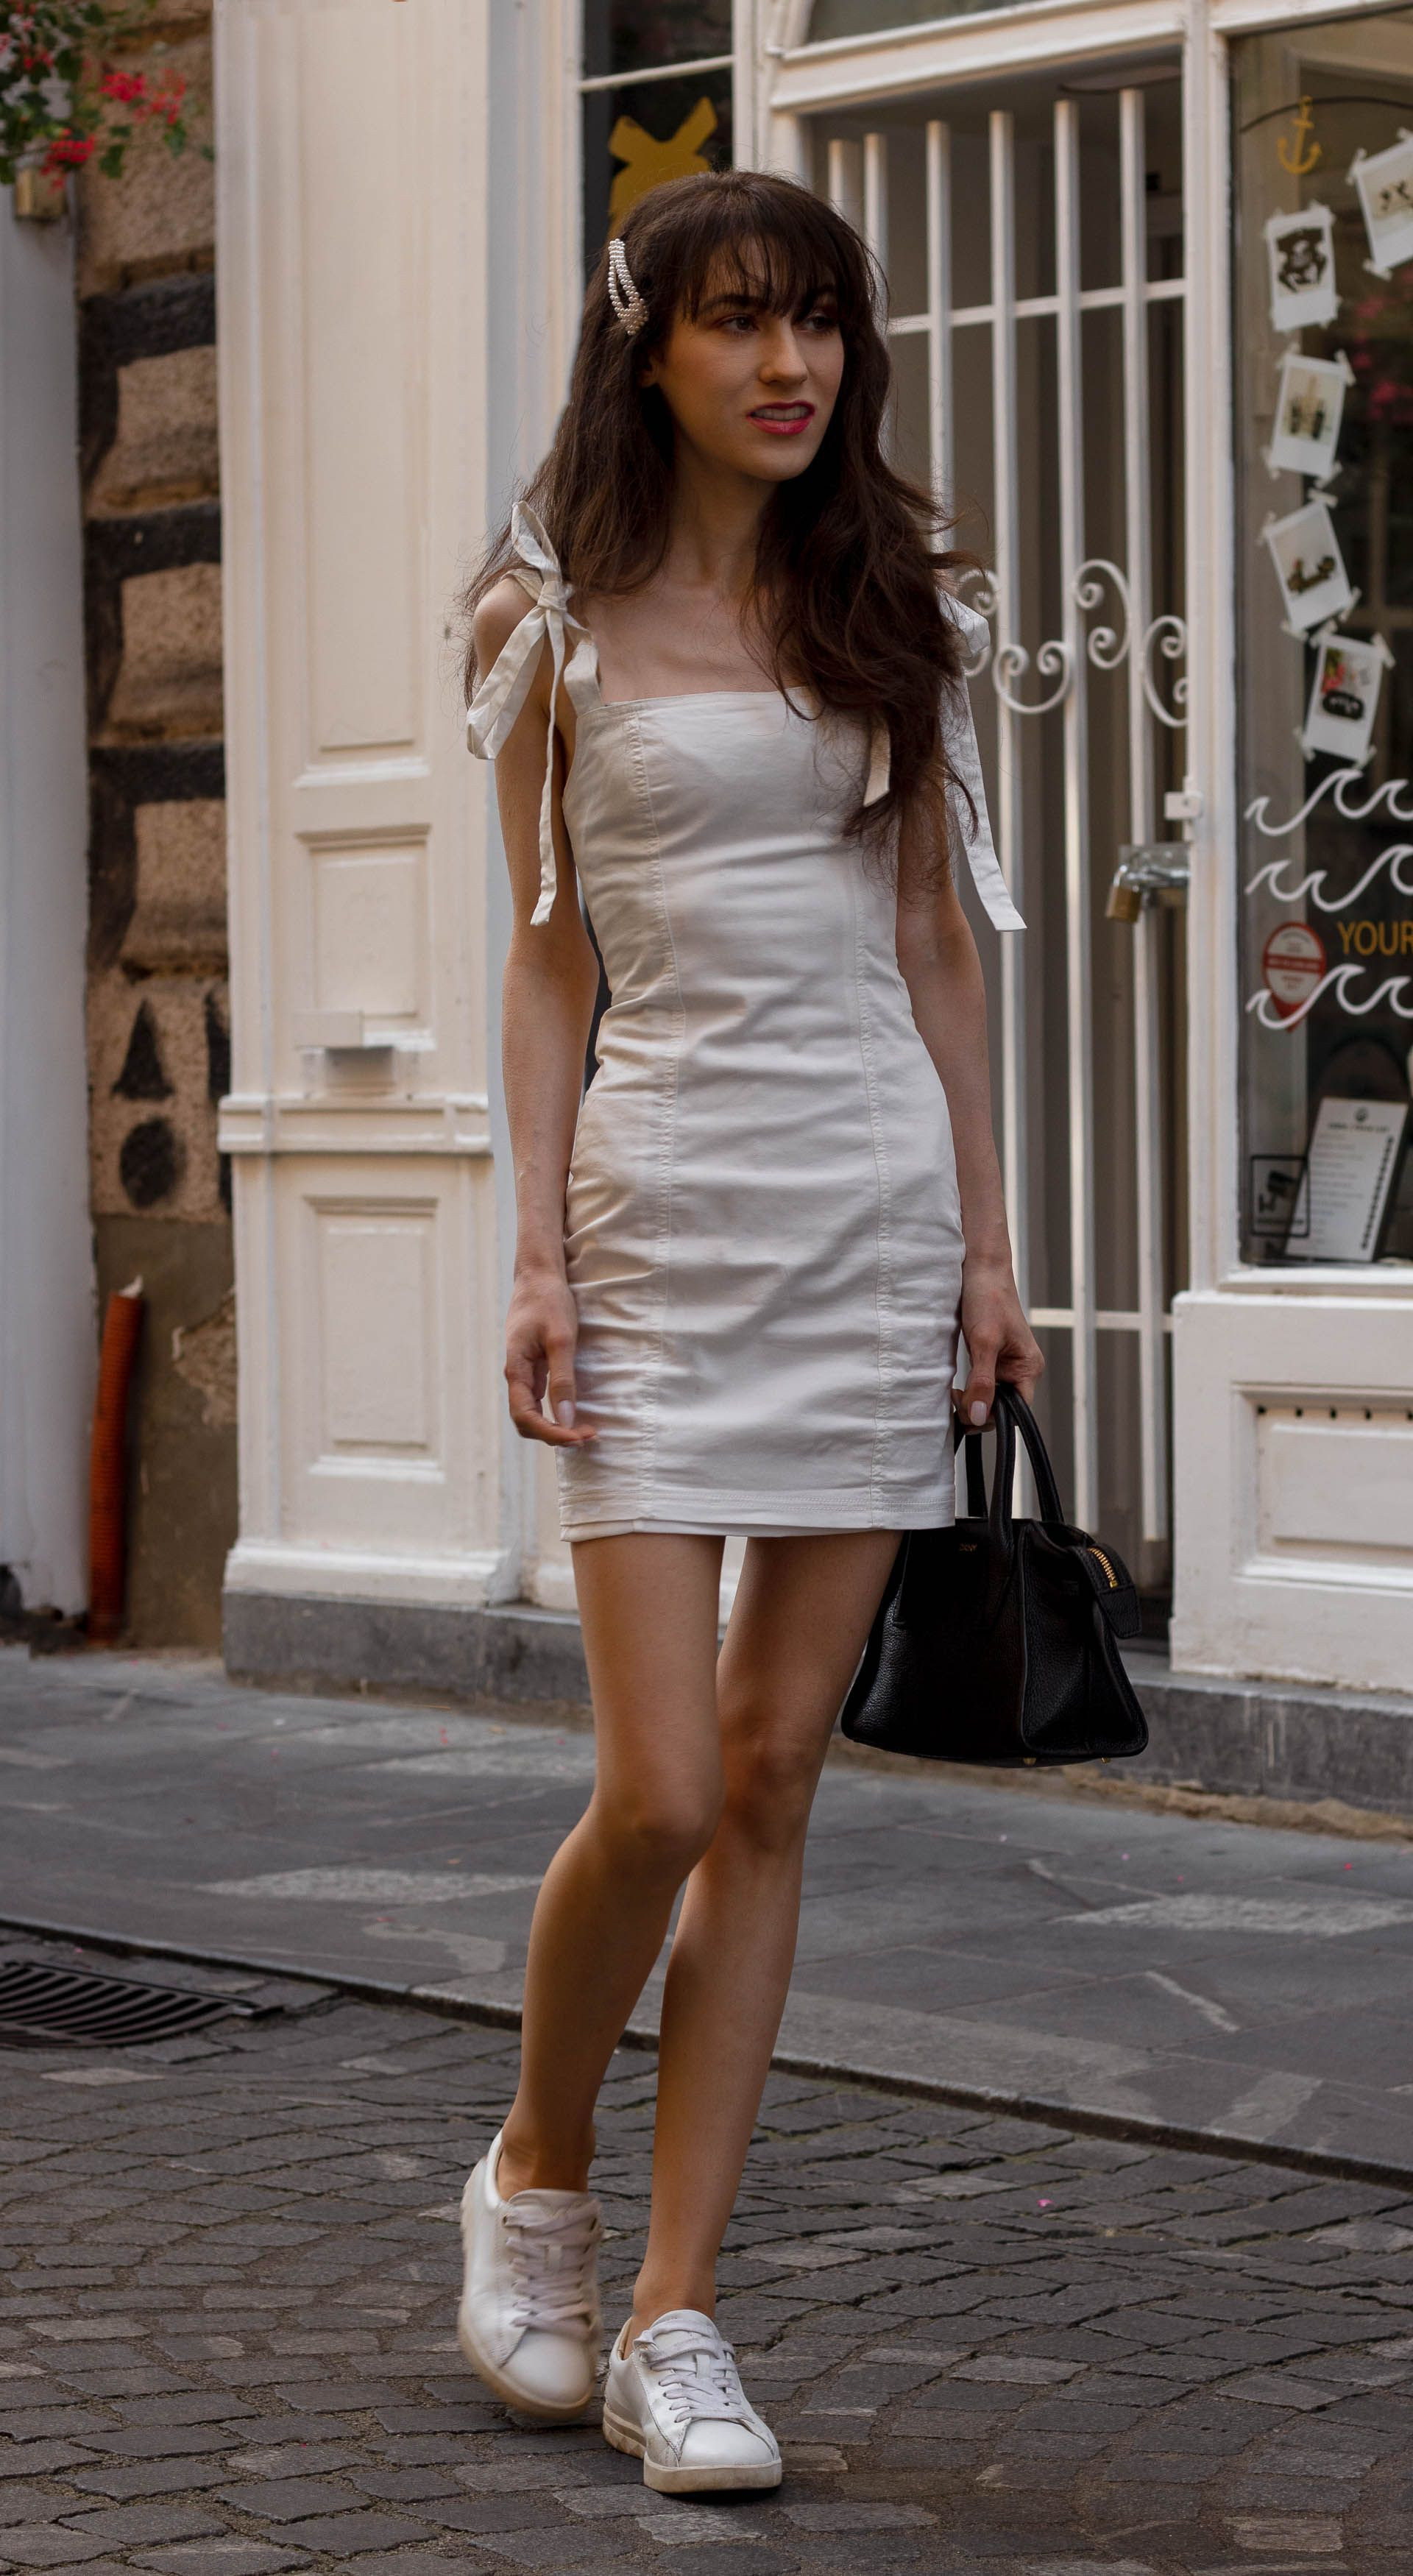 How To Style Mini Dress With Sneakers Brunette From Wall Street Dress With Sneakers Mini Dress Summer City Fashion [ 3500 x 1920 Pixel ]